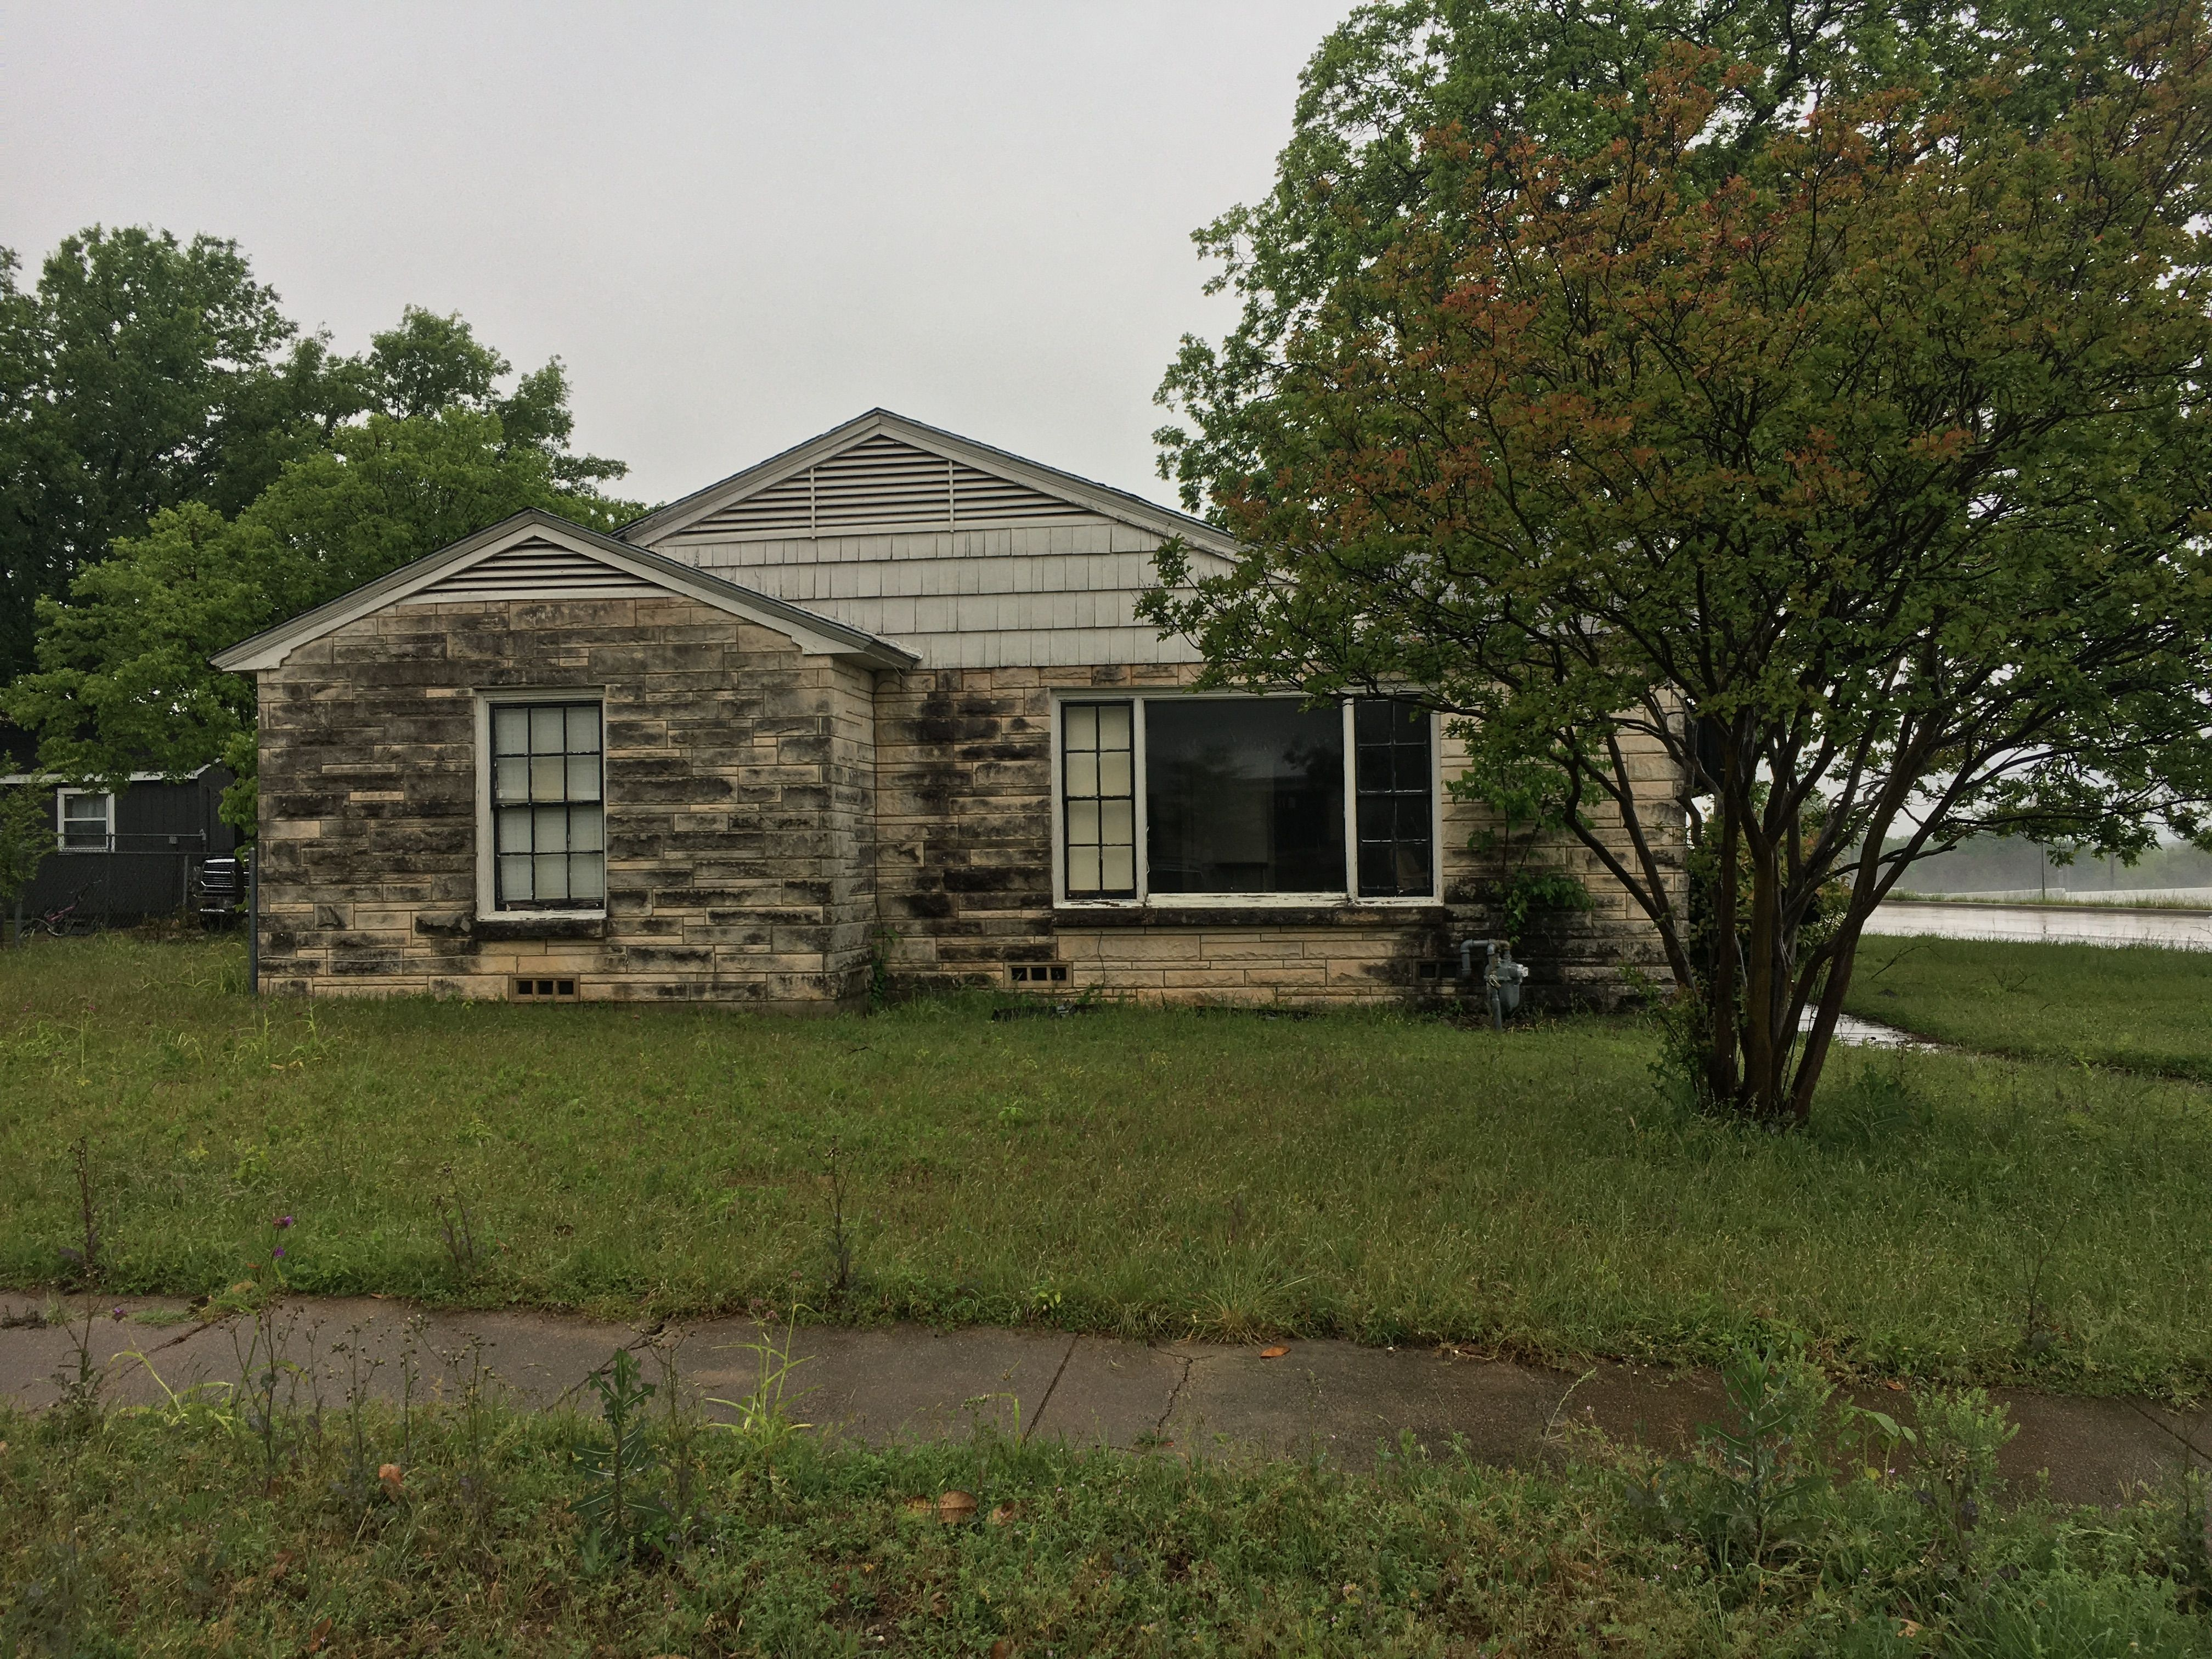 802 S 47th St, Temple, TX